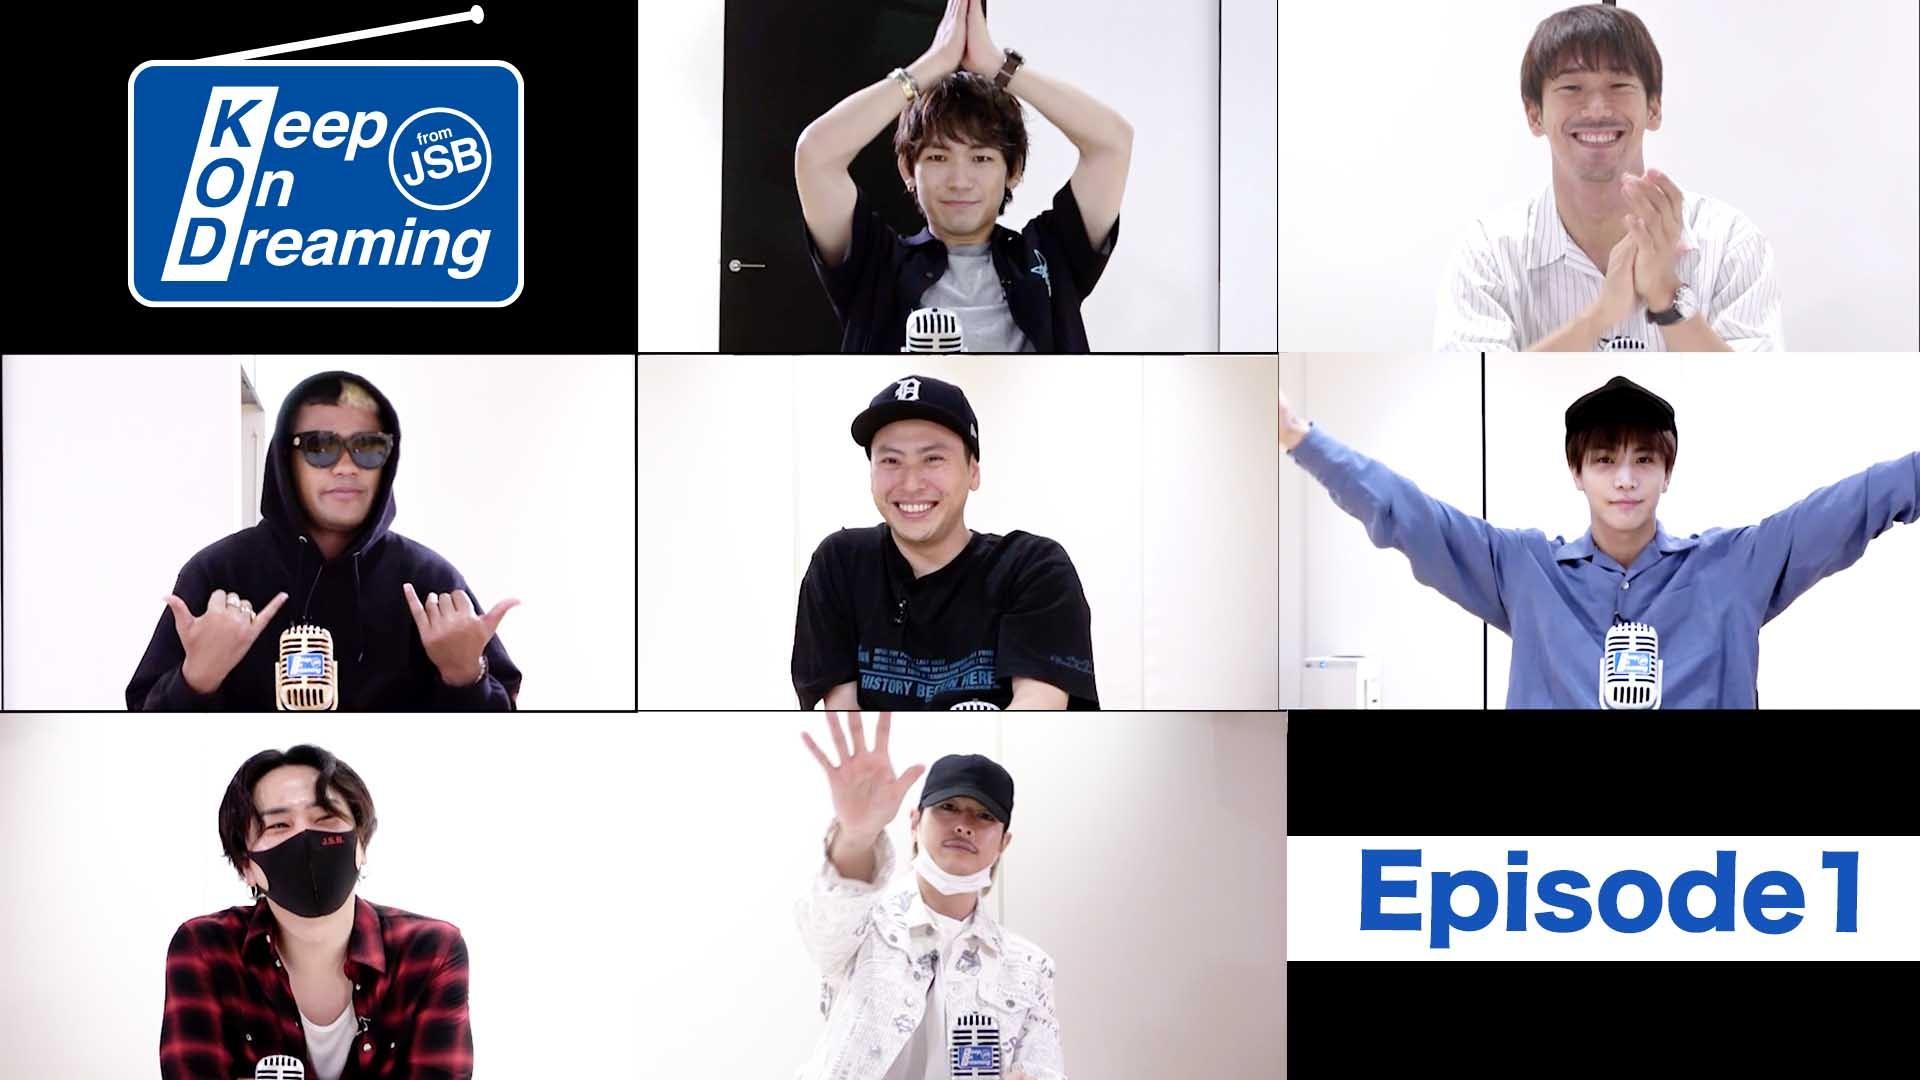 Keep On Dreaming From Jsb Episode 1 07 17 金 三代目 J Soul Brothers Cl Ldh所属アーティストの動画 Mv視聴サービス